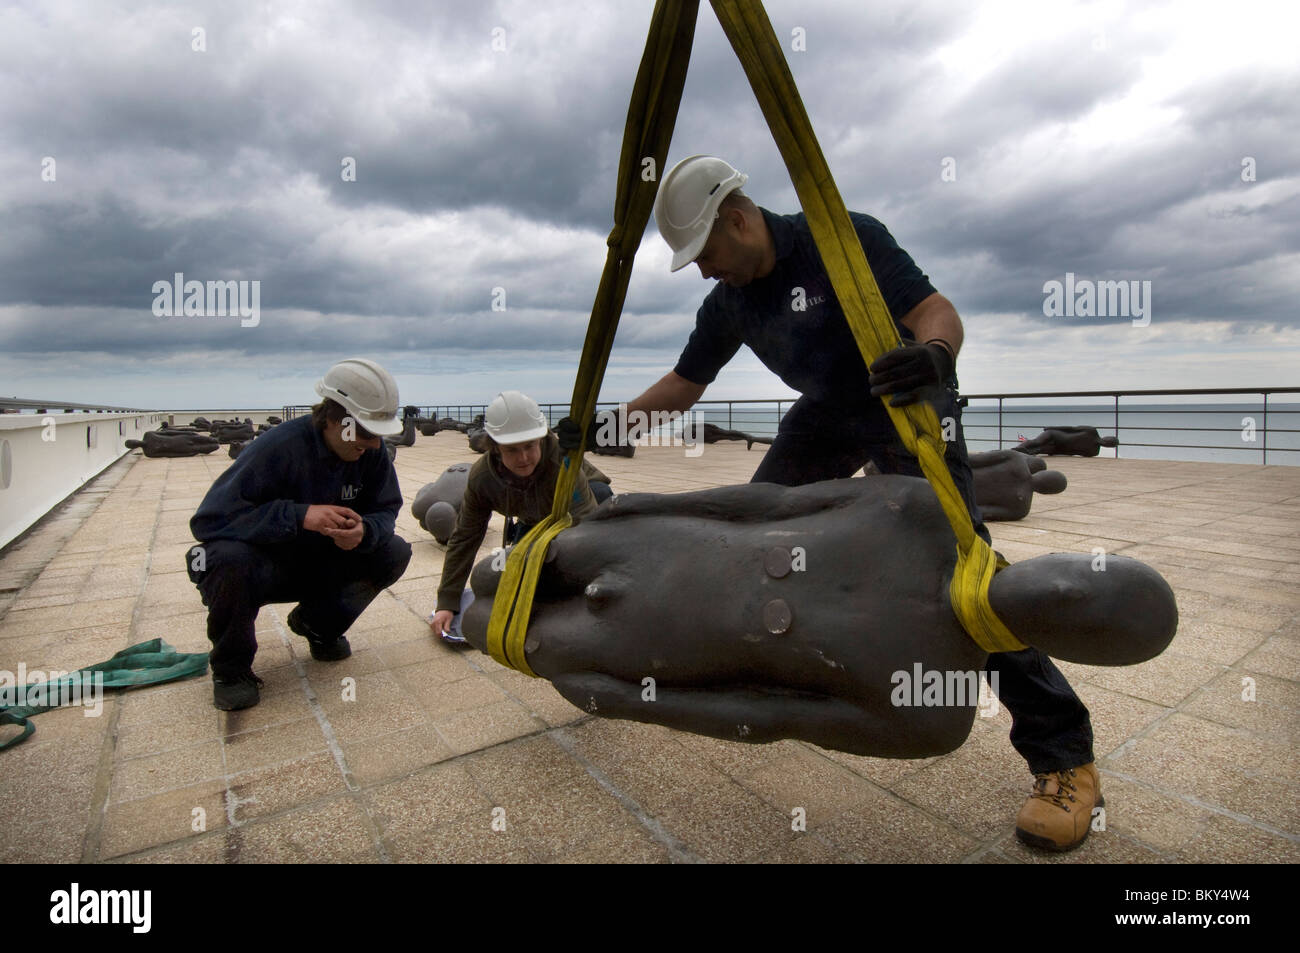 Antony Gormley's 60 'Critical Mass' sculptures being installed on the roof of the Art Deco De La Warr - Stock Image